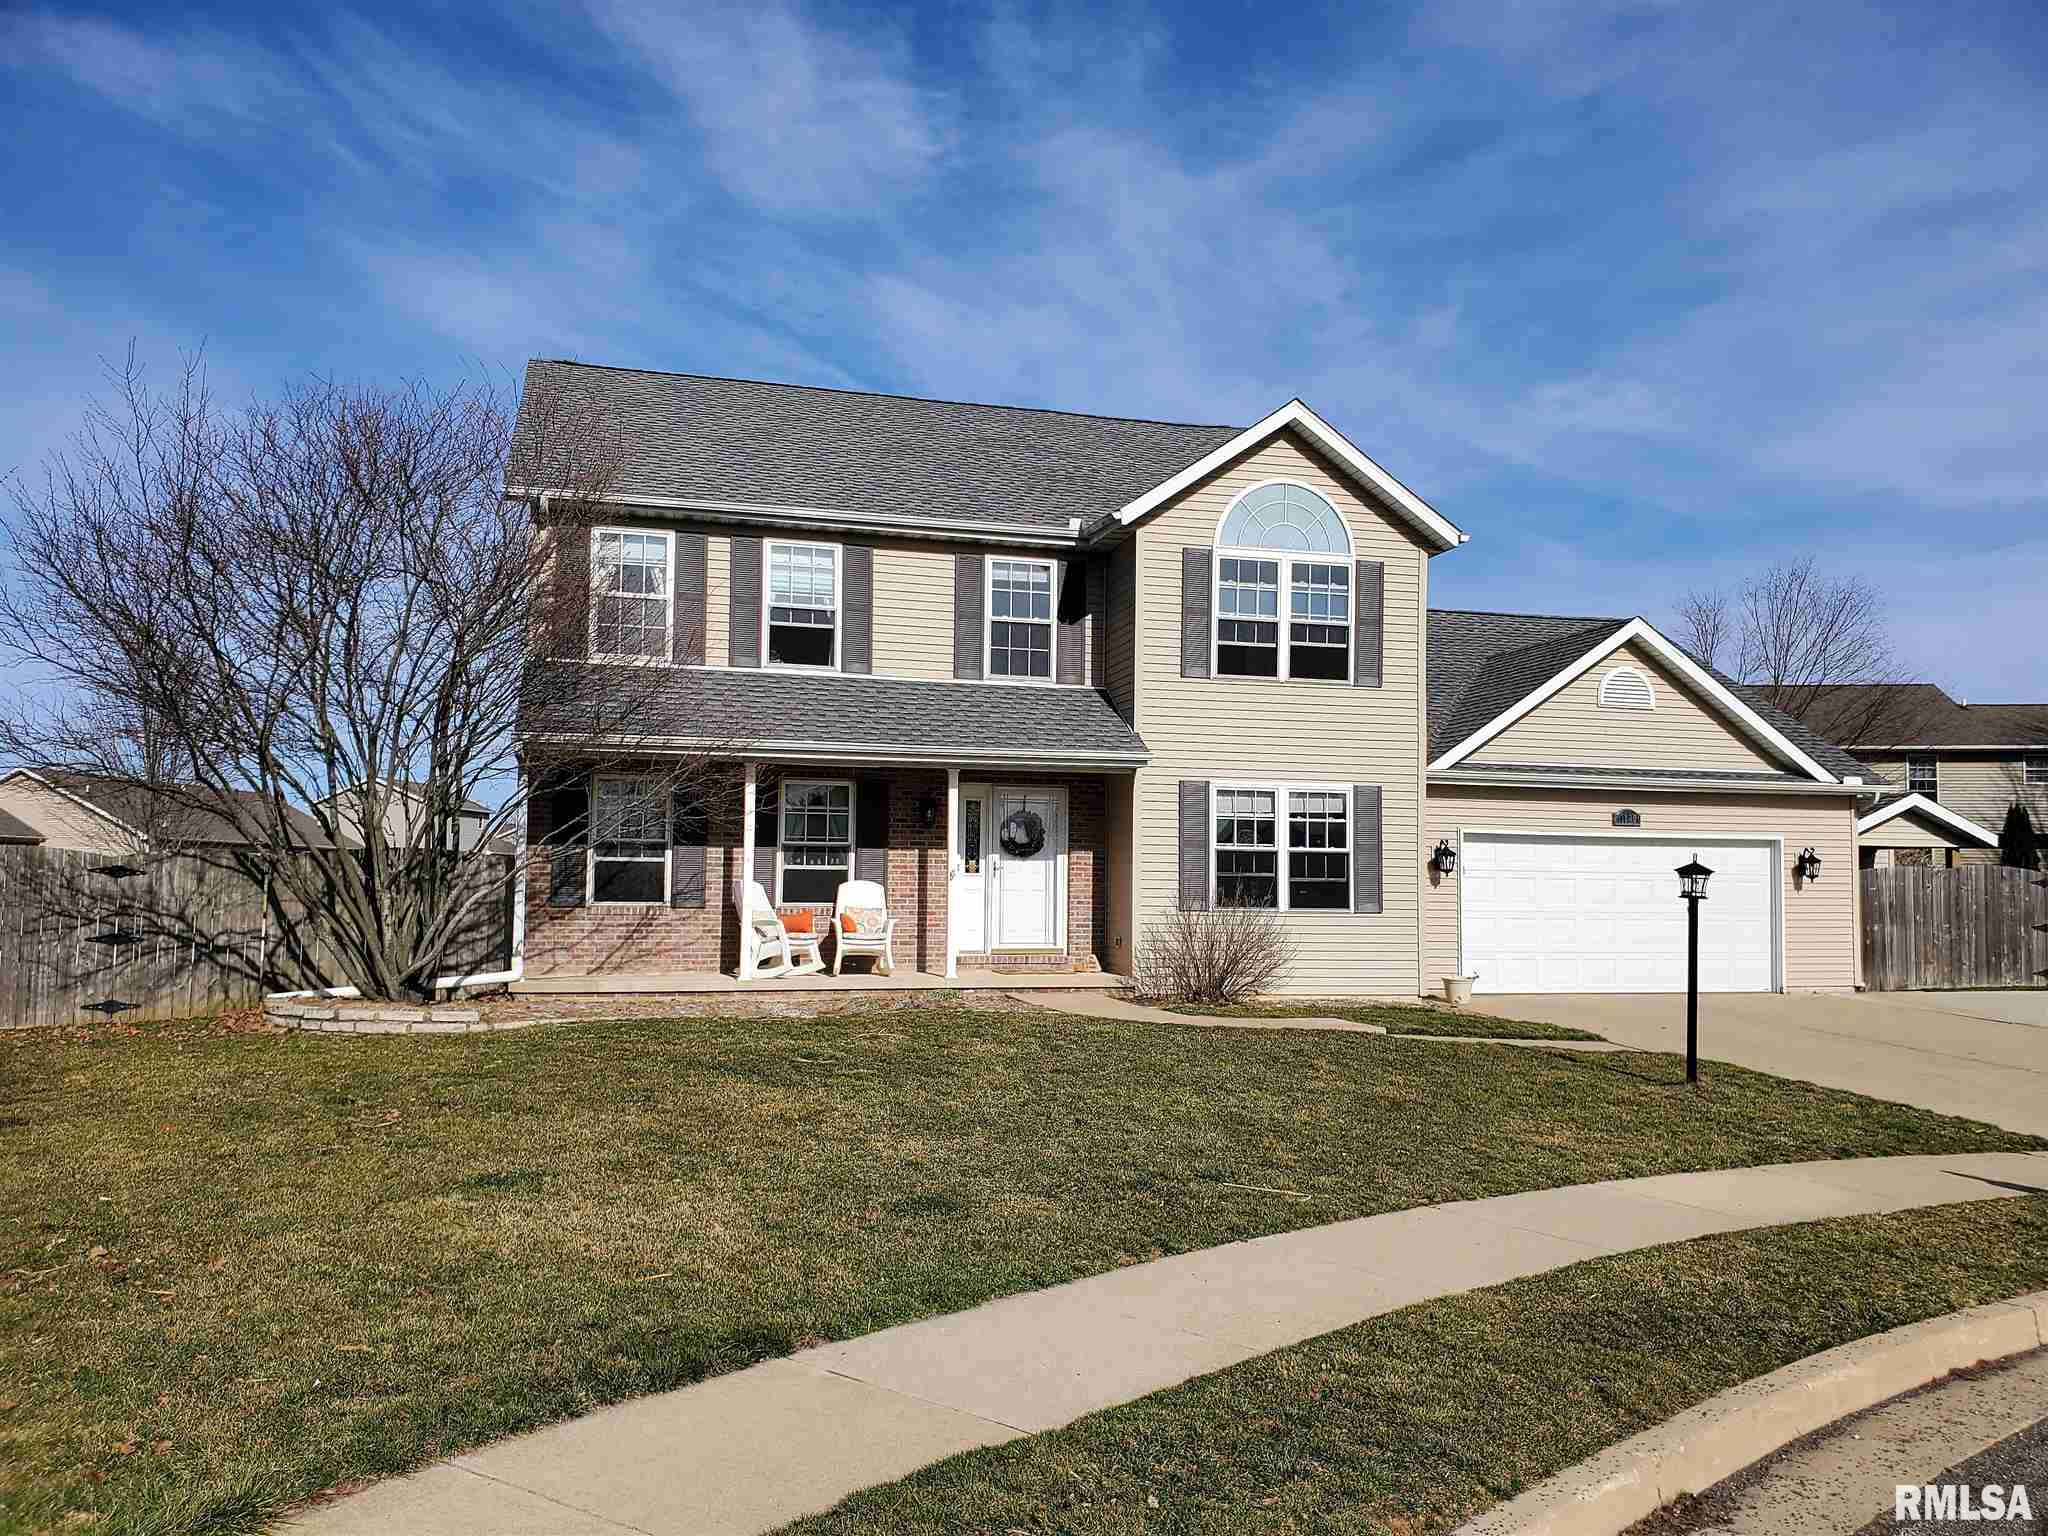 1130 BELSLY Property Photo - Metamora, IL real estate listing